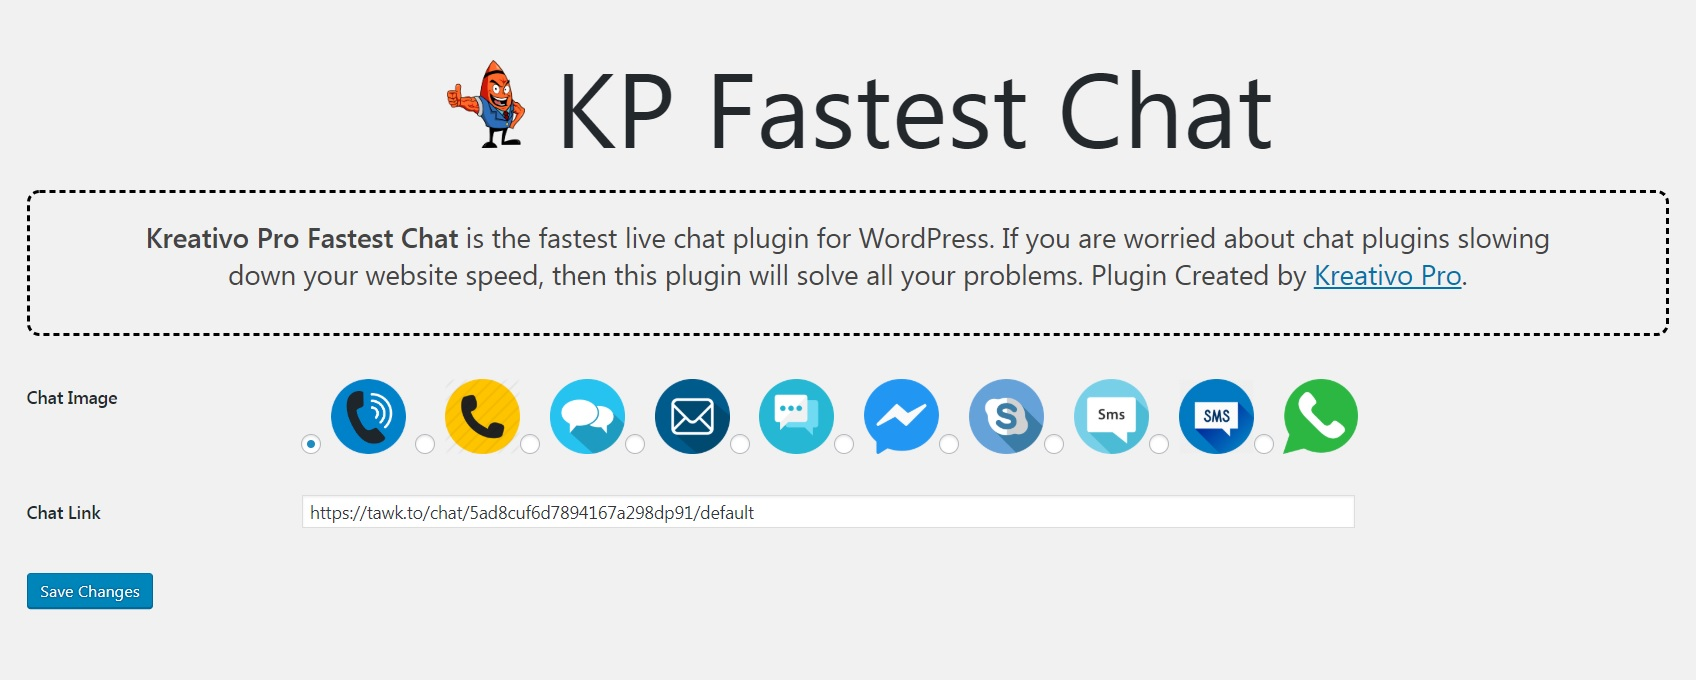 KP Fastest Chat